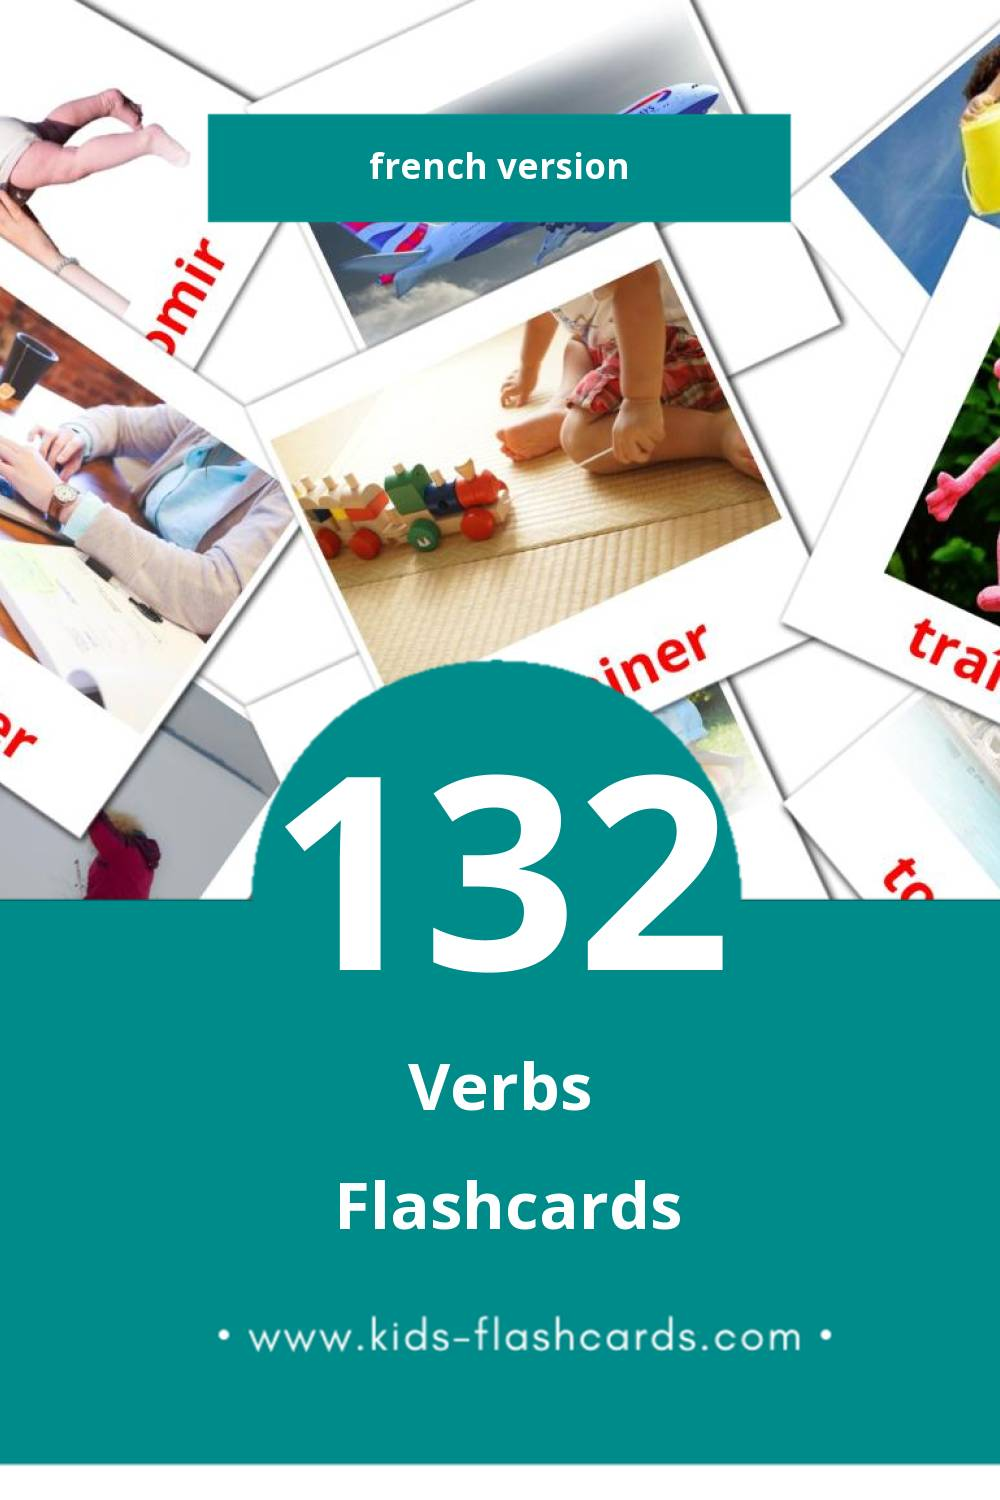 Visual Verbes Flashcards for Toddlers (133 cards in French)